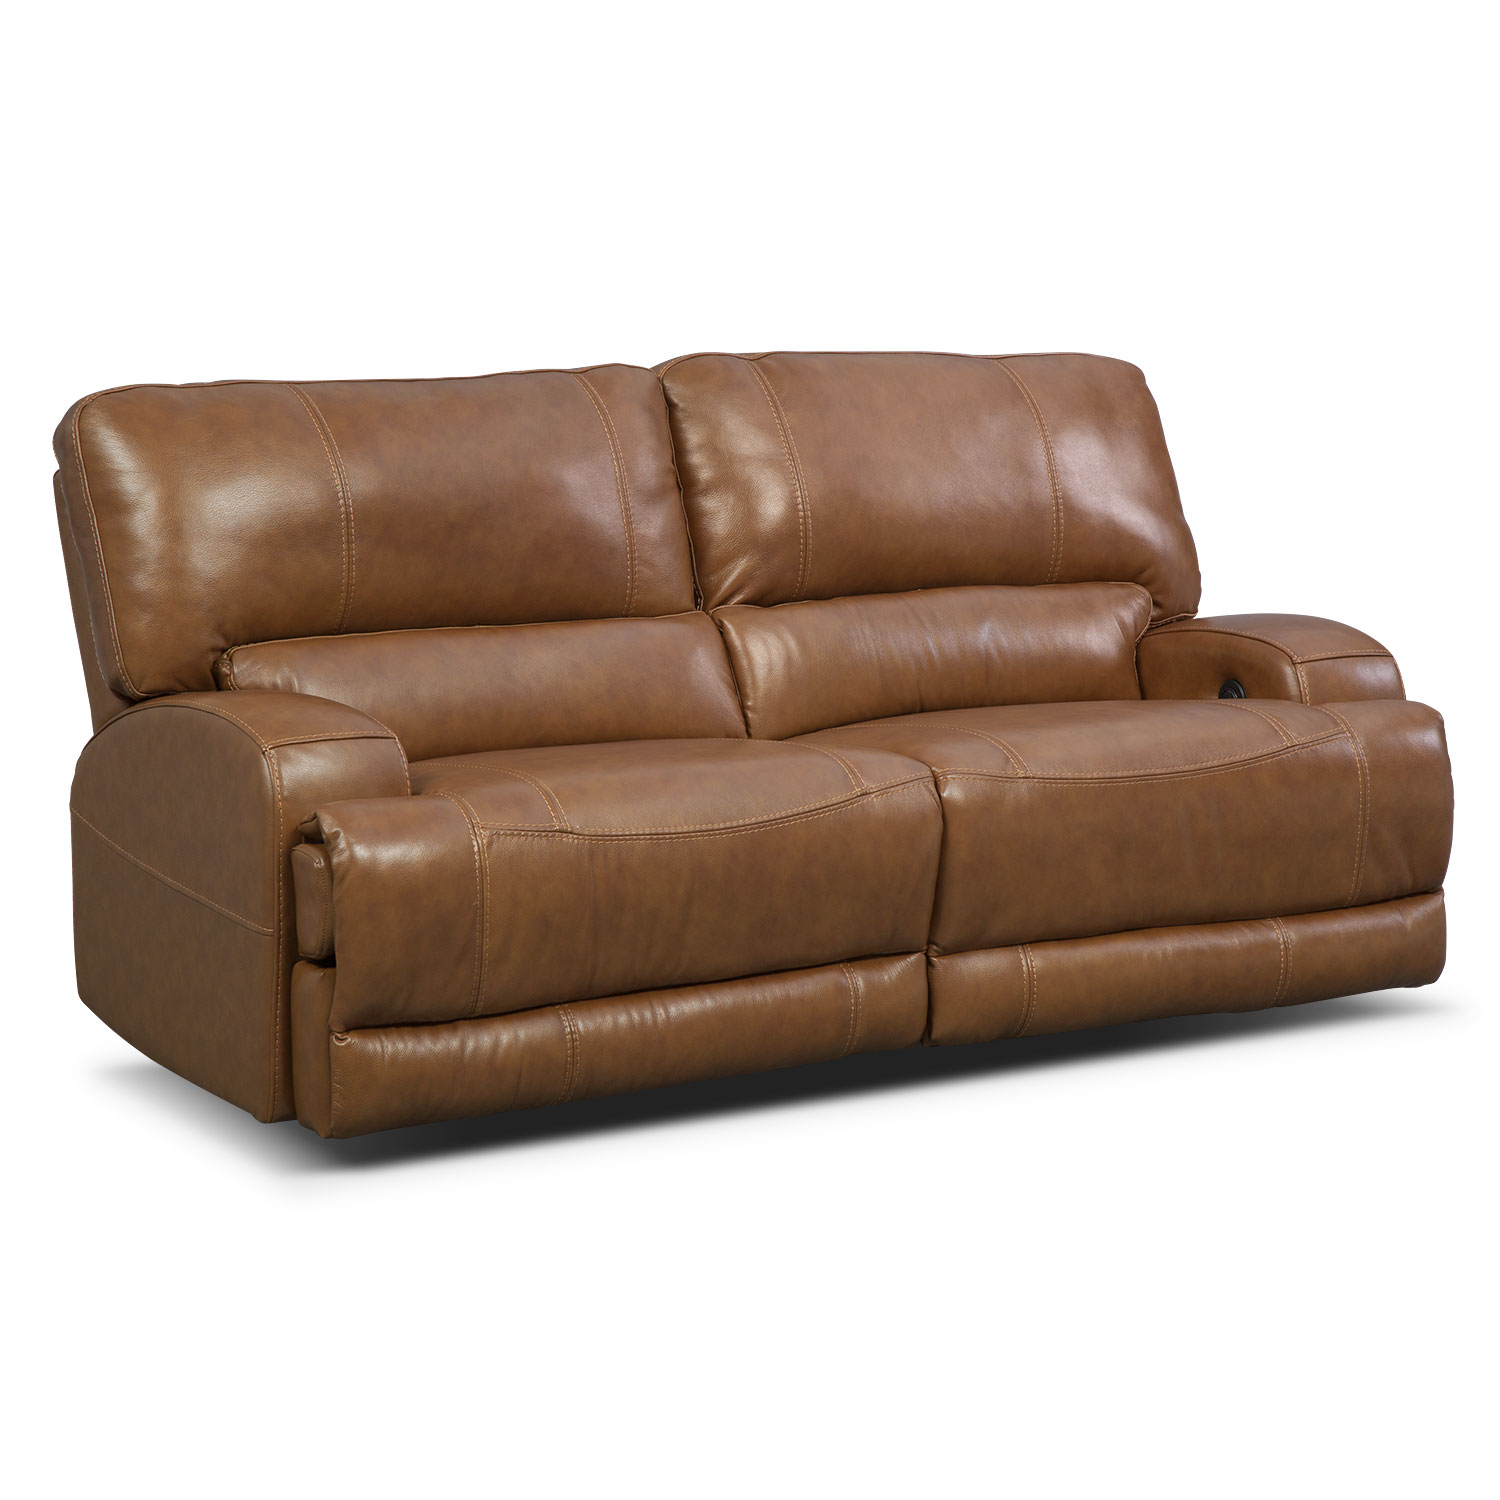 Barton Power Reclining Sofa Camel